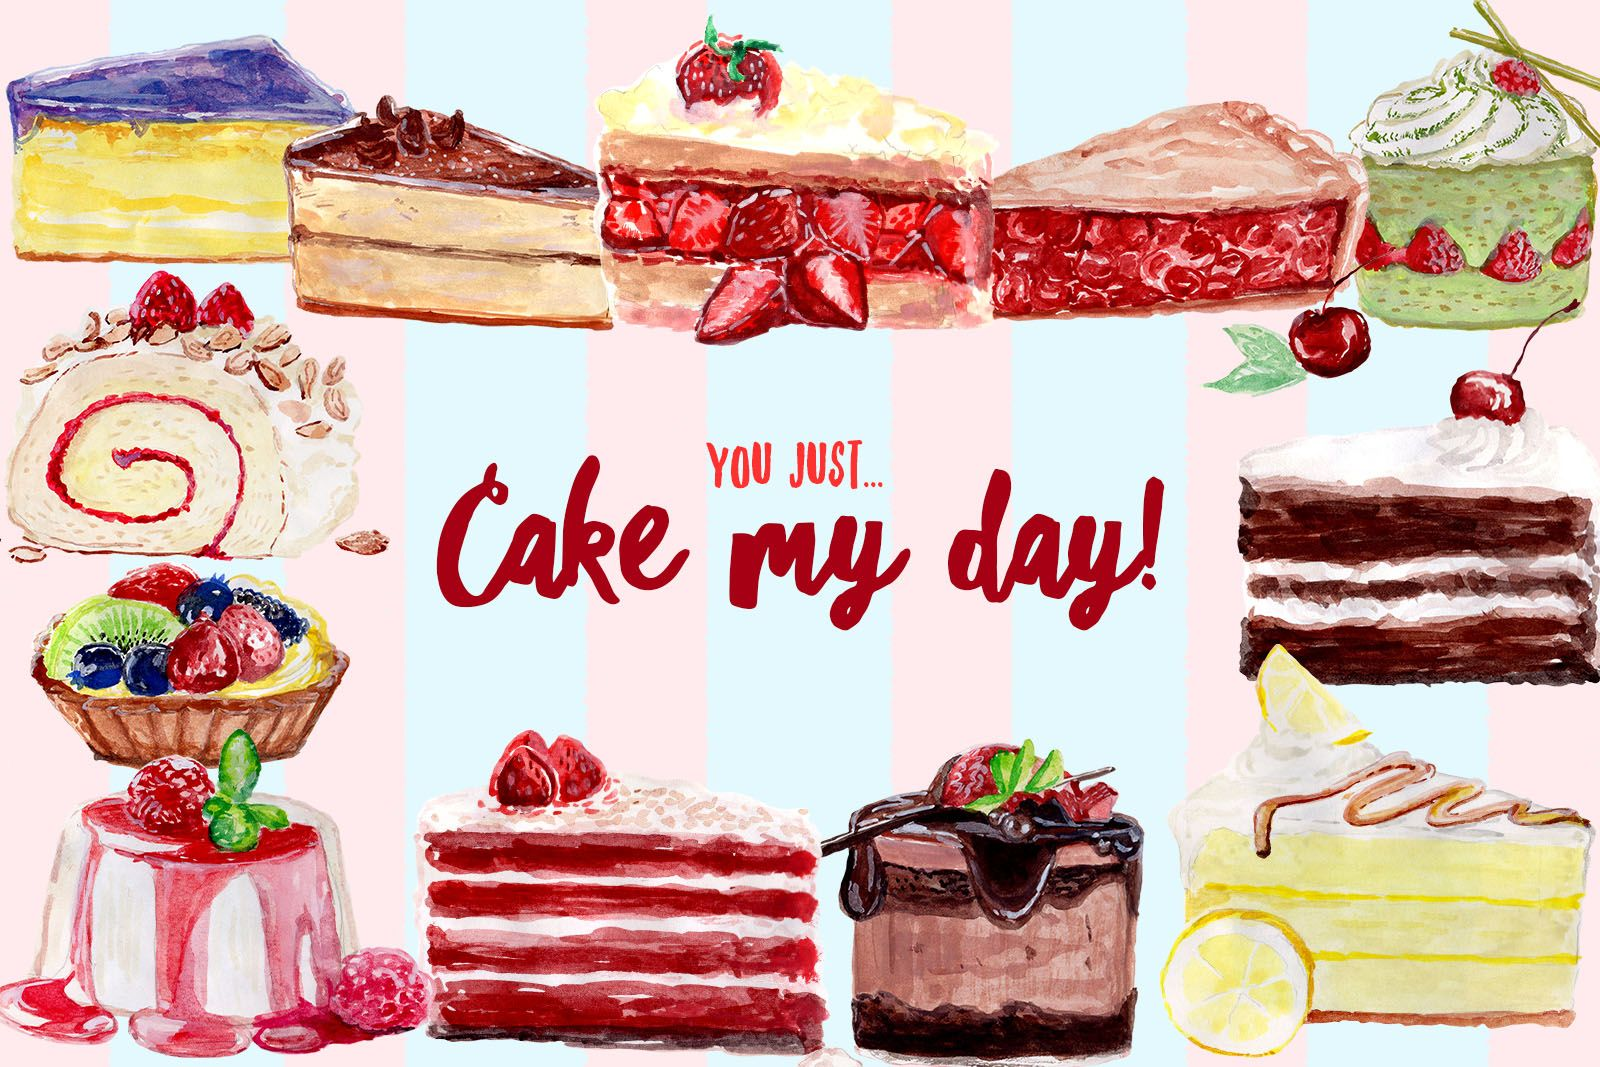 small resolution of free watercolor cake cliparts volumes cifsdata2 mom design freebies free design resources fdr cake my day free watercolor clipart